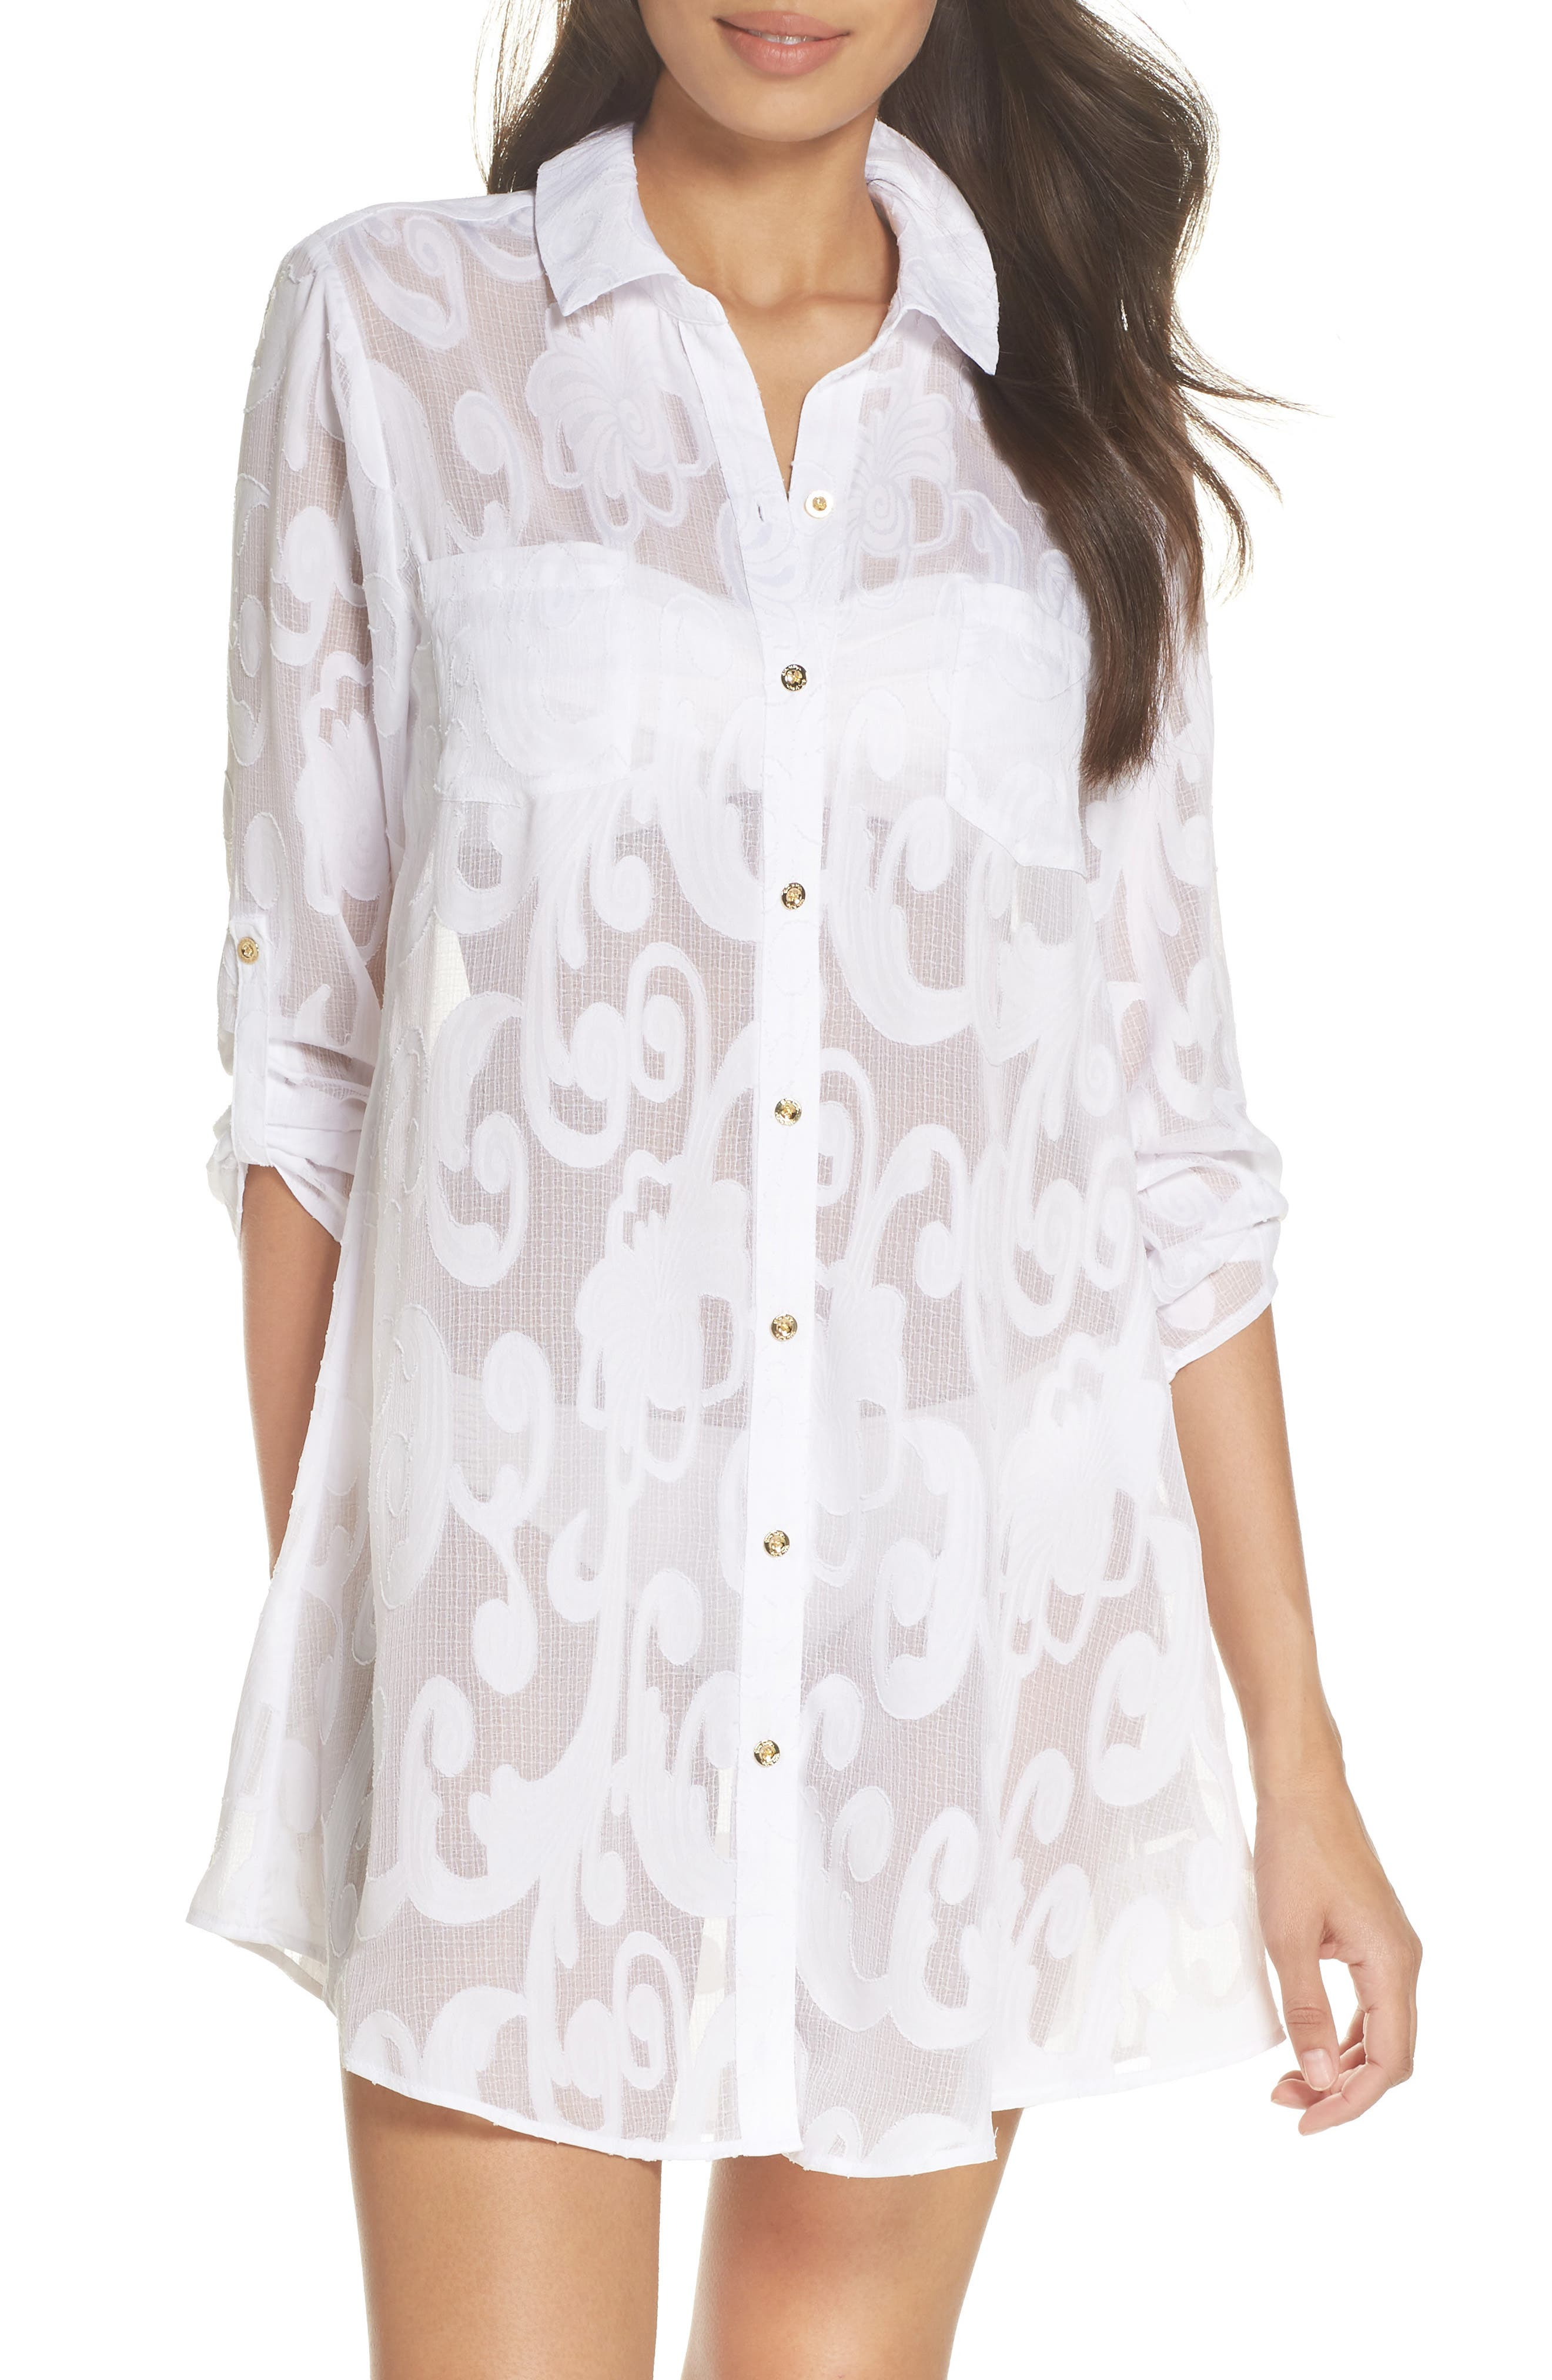 Natalie Shirtdress Cover-Up,                             Main thumbnail 1, color,                             Resort White Poly Crepe Swirl